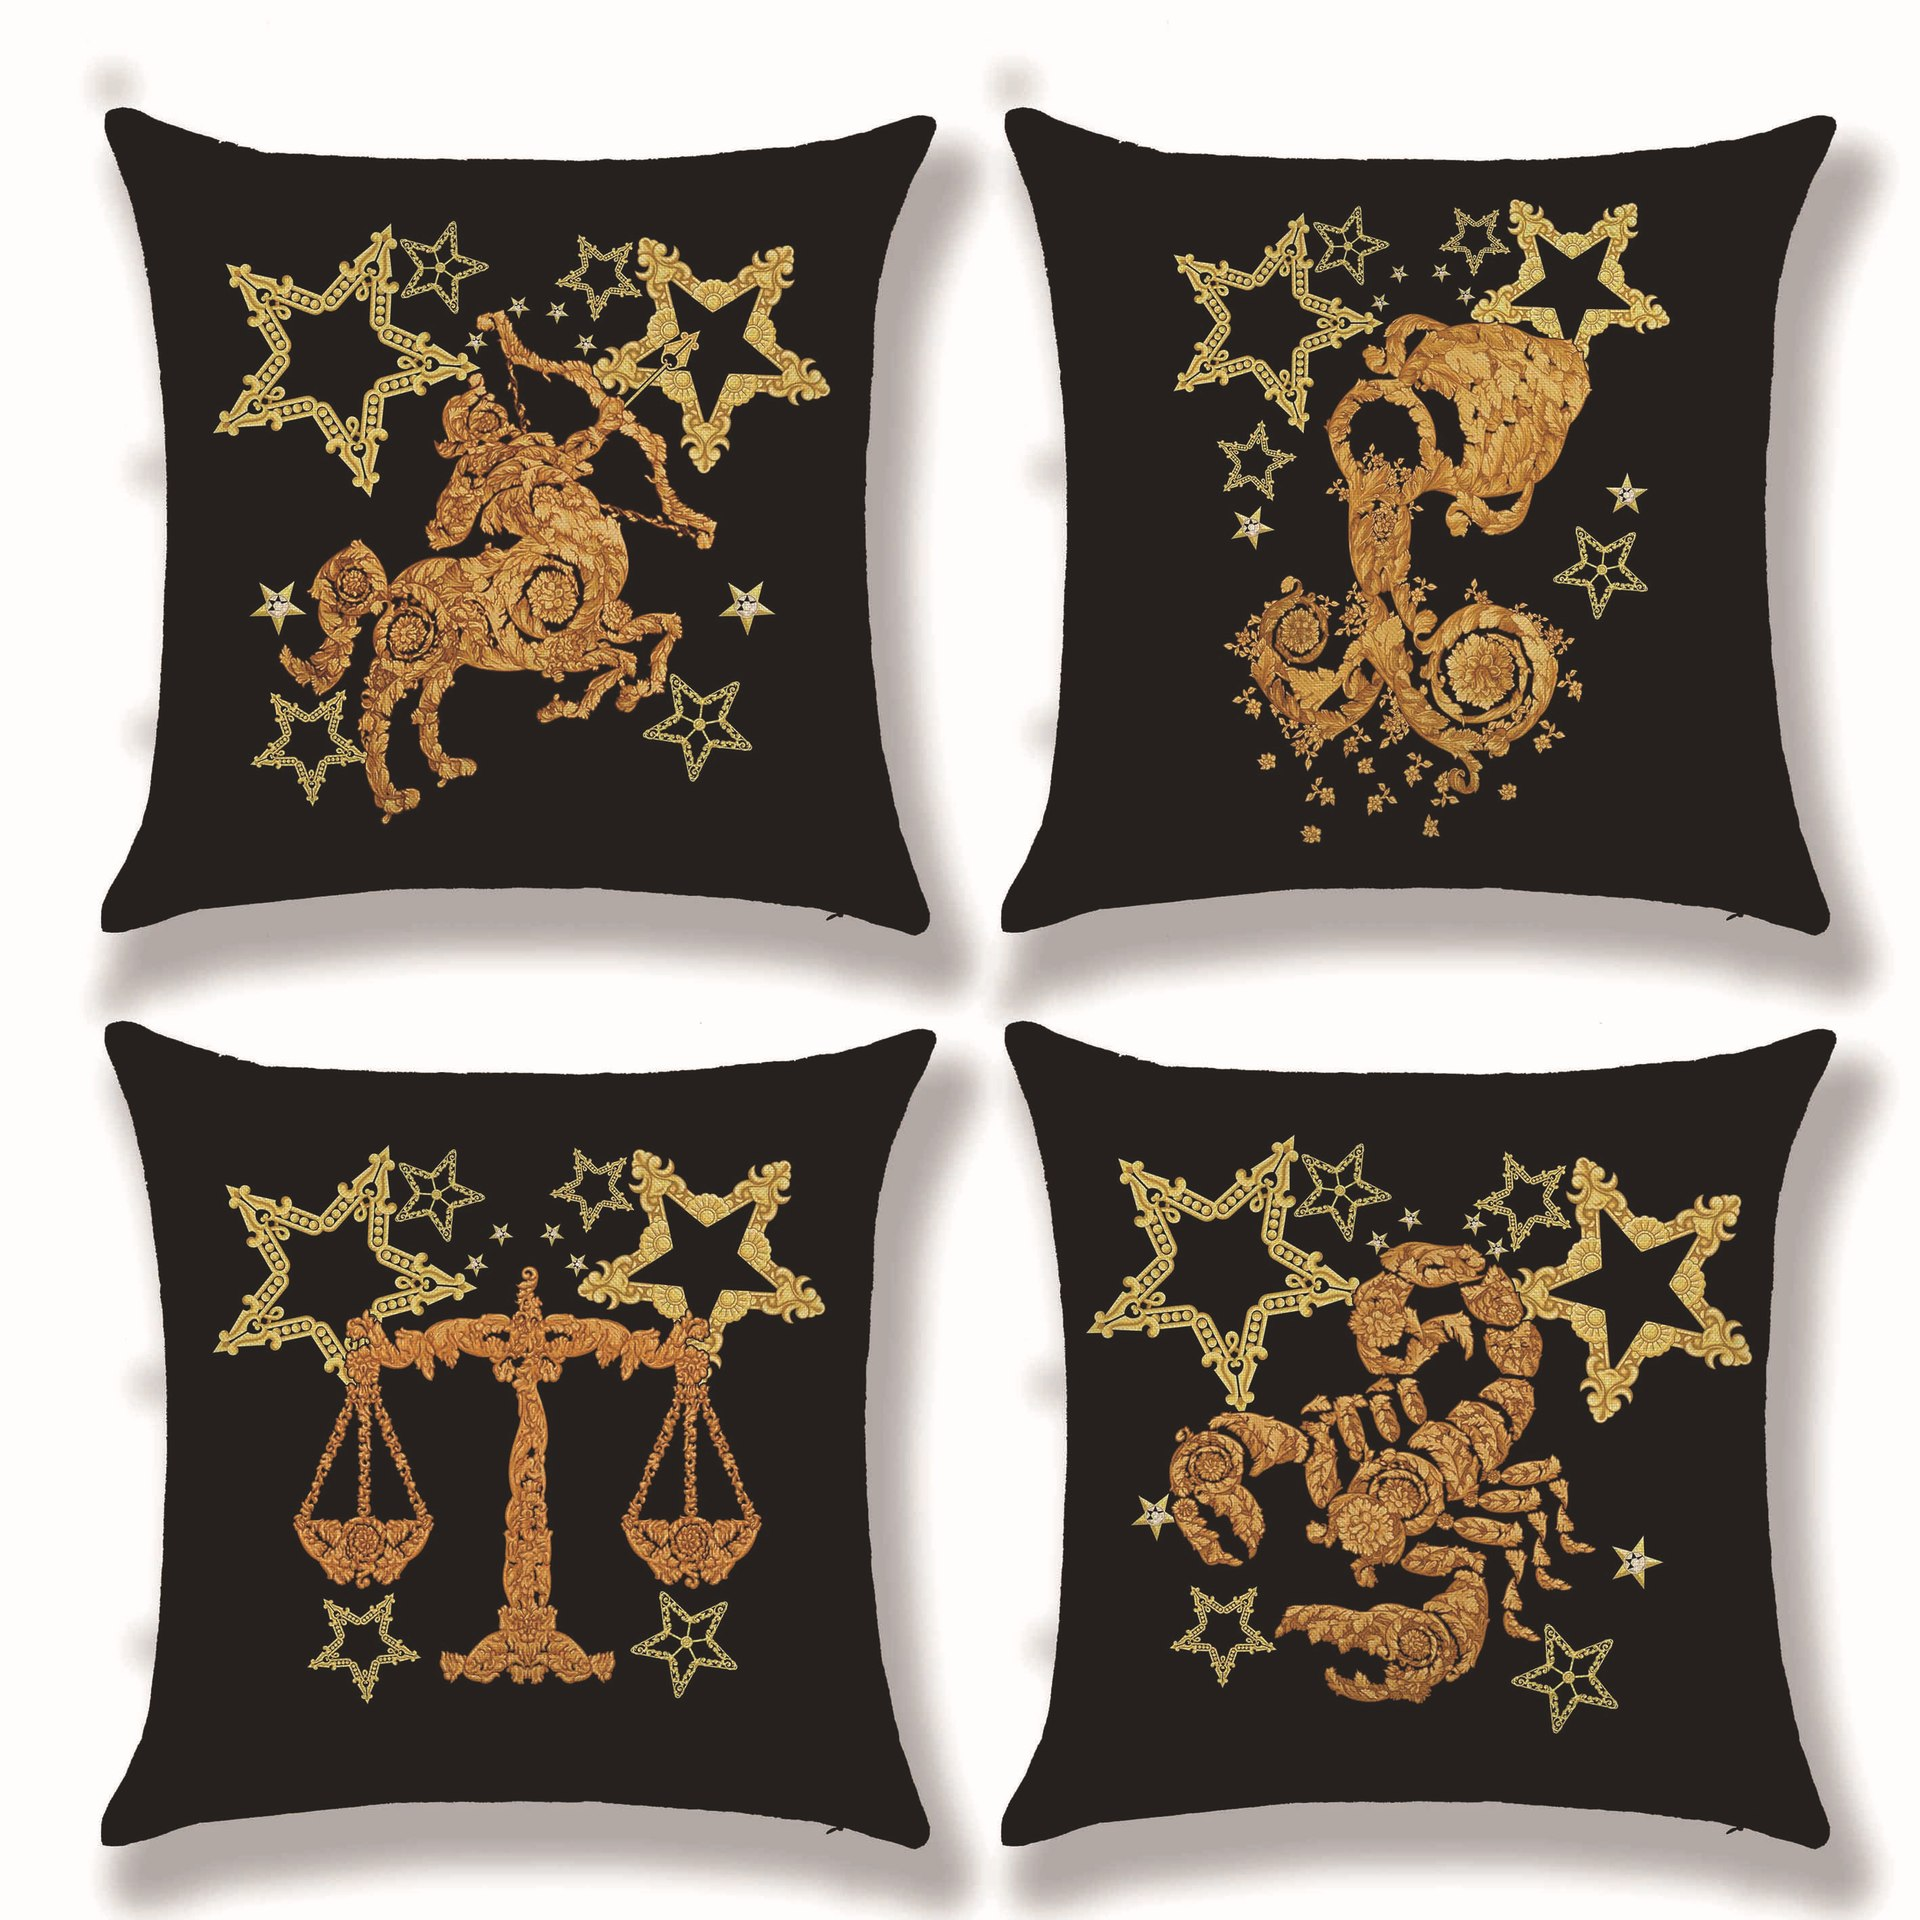 Practical Mythical Twelve Constellations Cushion Cover European Classical Household Style Cotton Linen Decoration Sofa Pillow Case 45x45cm Making Things Convenient For The People Table & Sofa Linens Cushion Cover